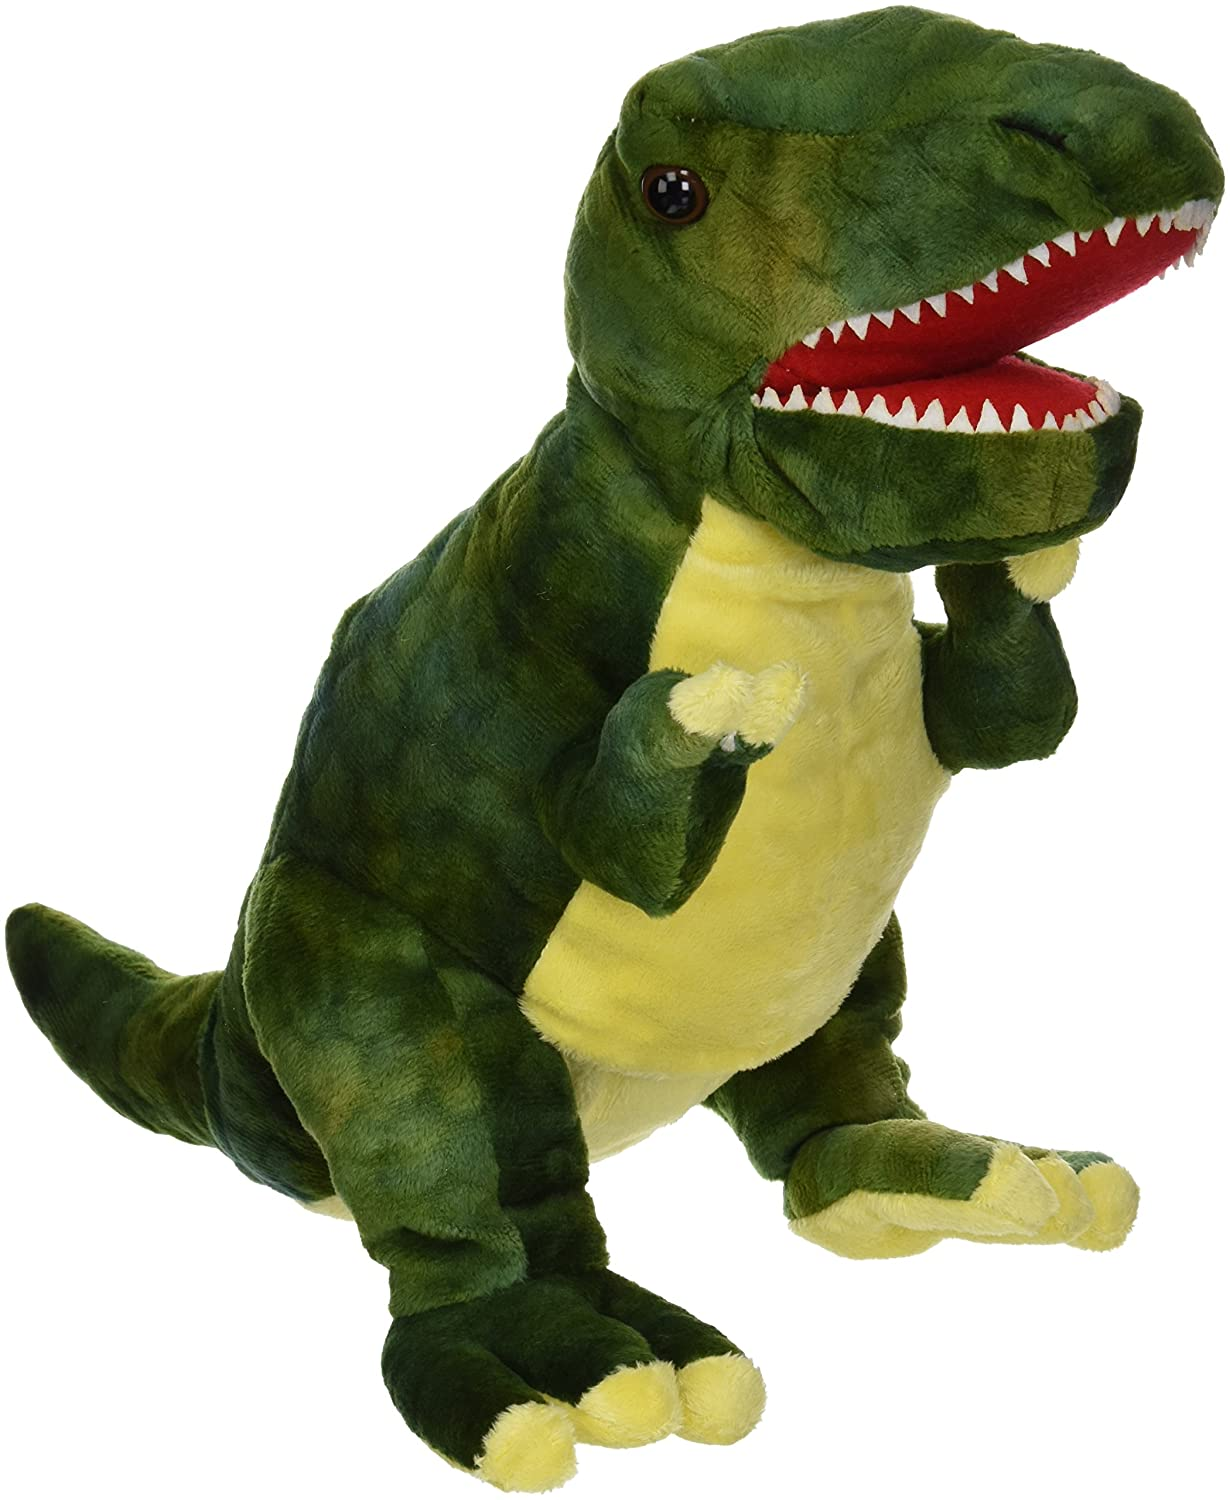 The Puppet Company - Baby Dinos - T-Rex PC002902